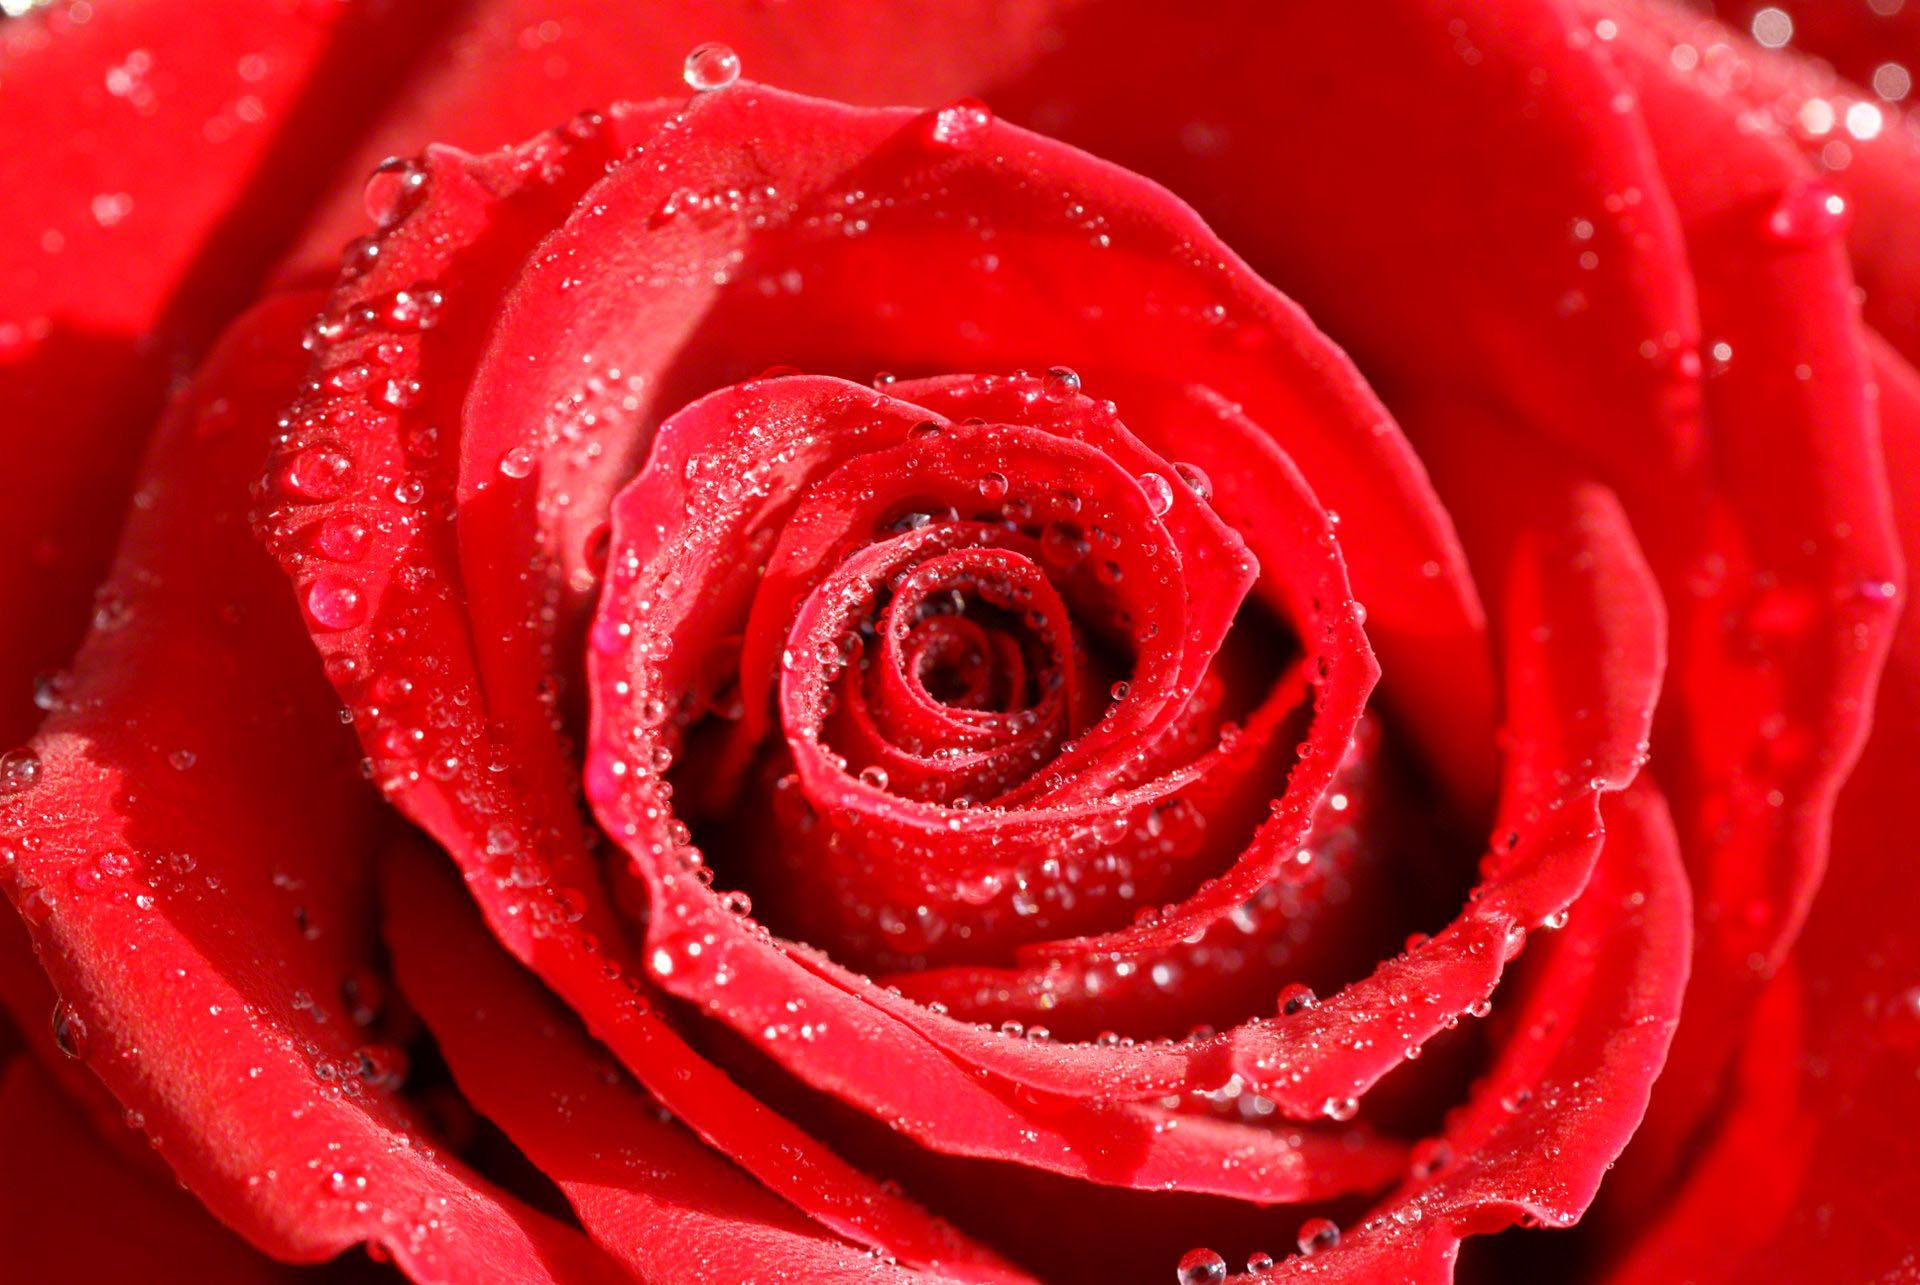 flower images hd rose and wallpapers Download